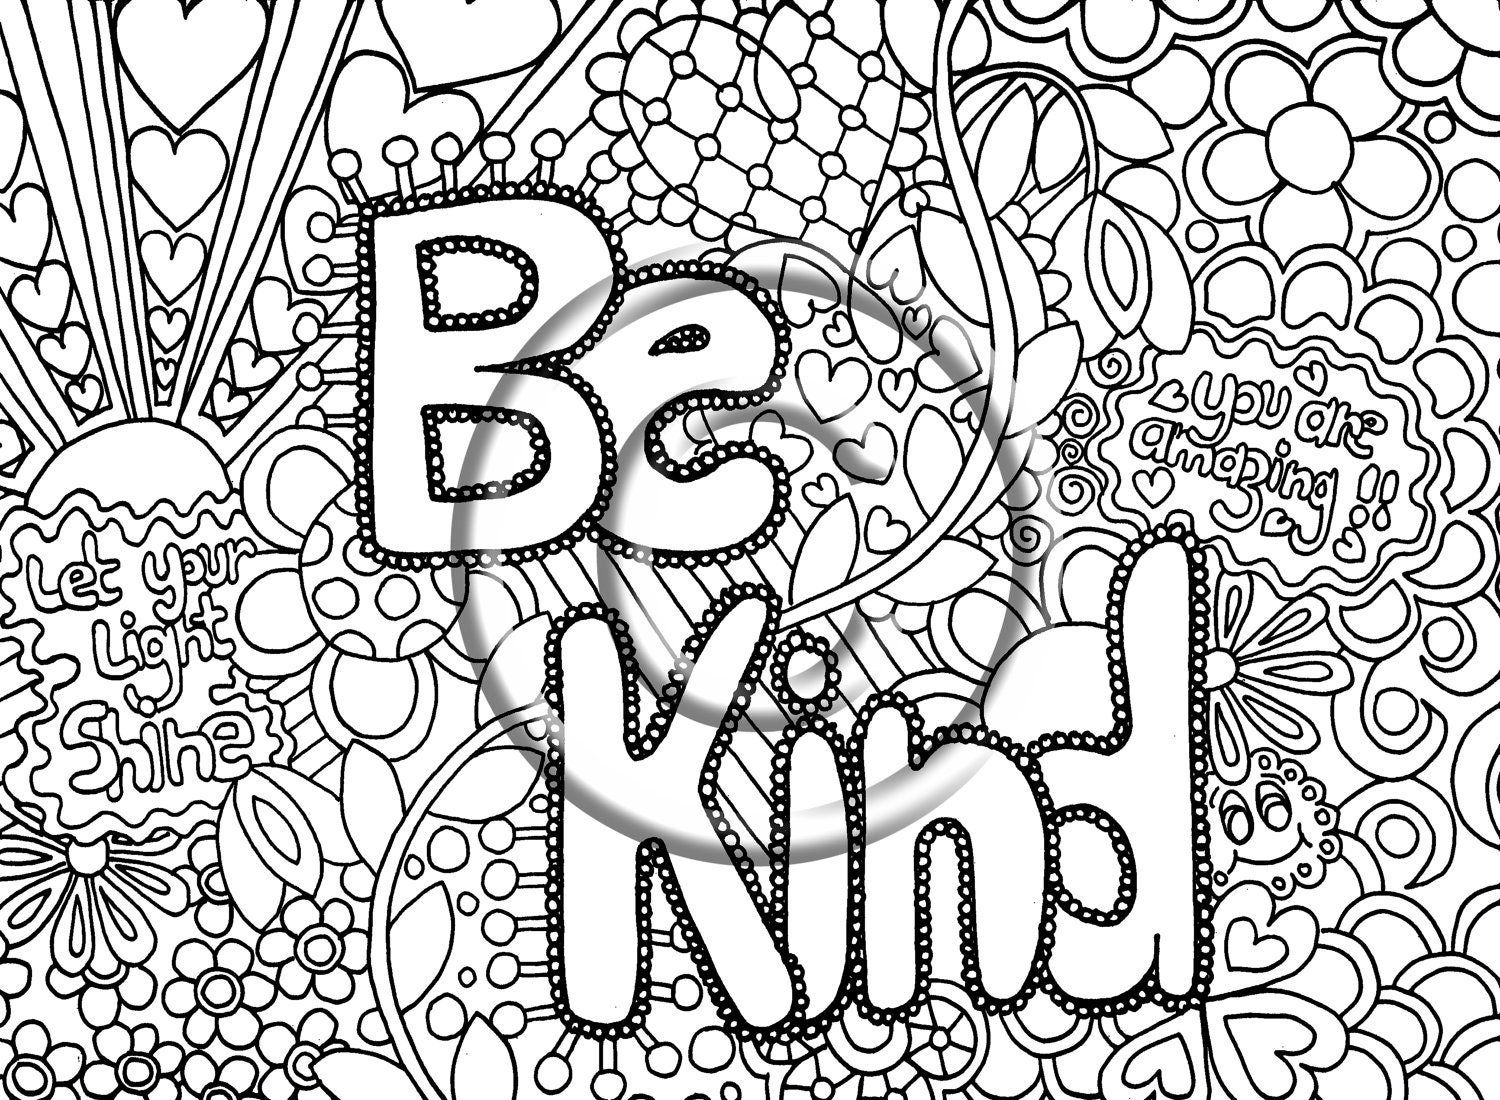 Abstract Art Coloring Pages Search Results Calendar 2015